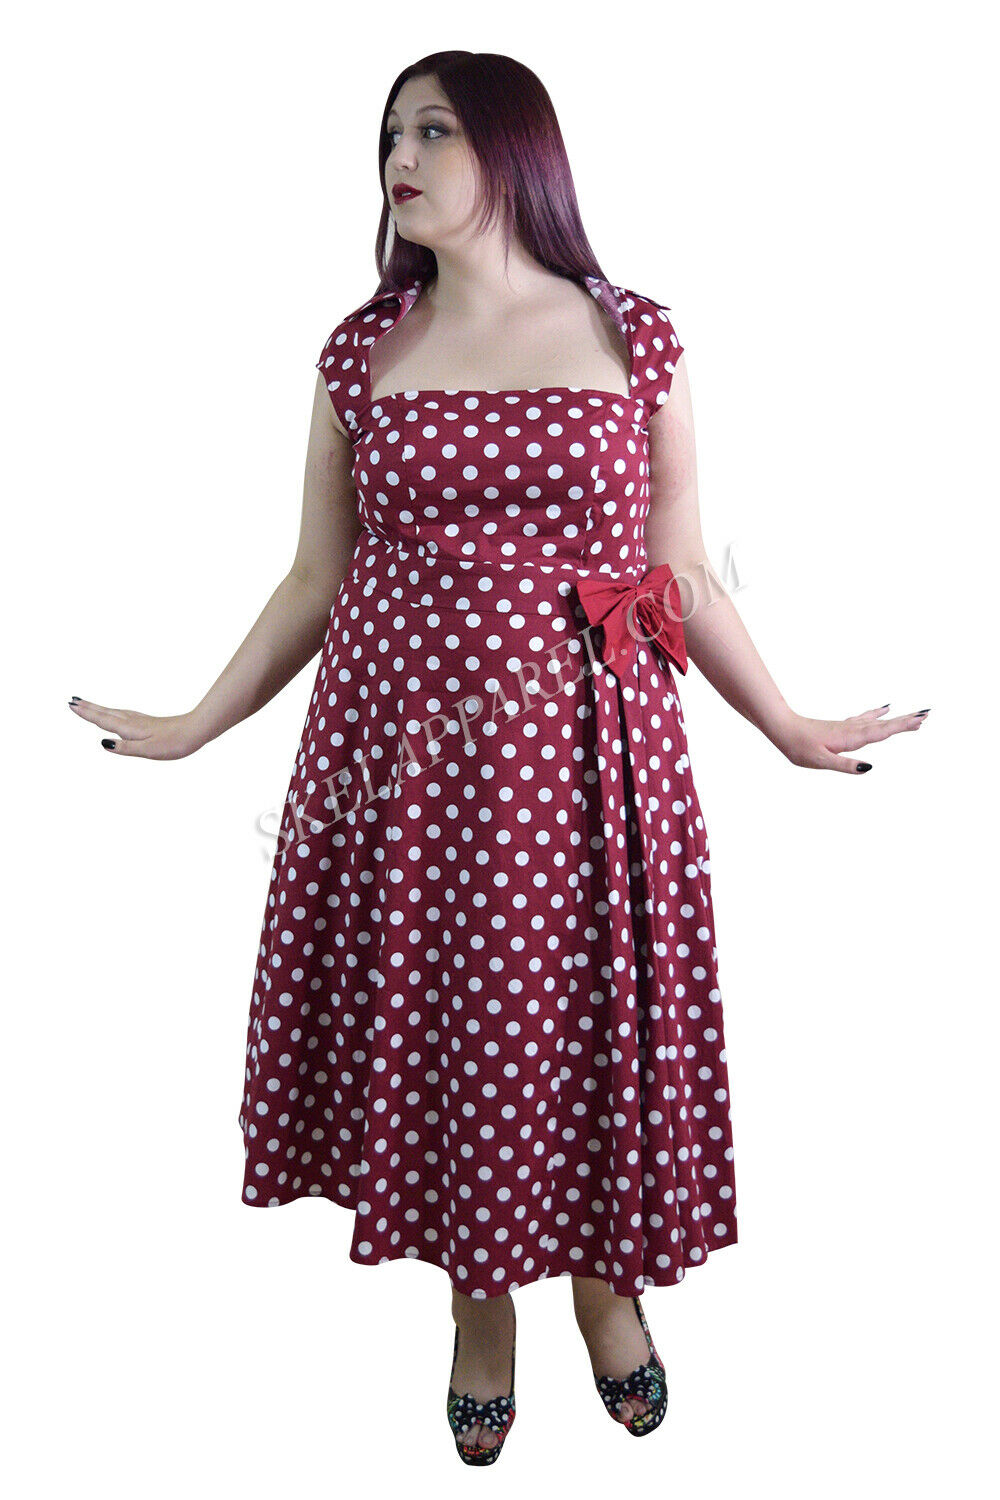 60's Retro Rockabilly Pin-up rot and Weiß Polka Dot Belted bow Party Dress